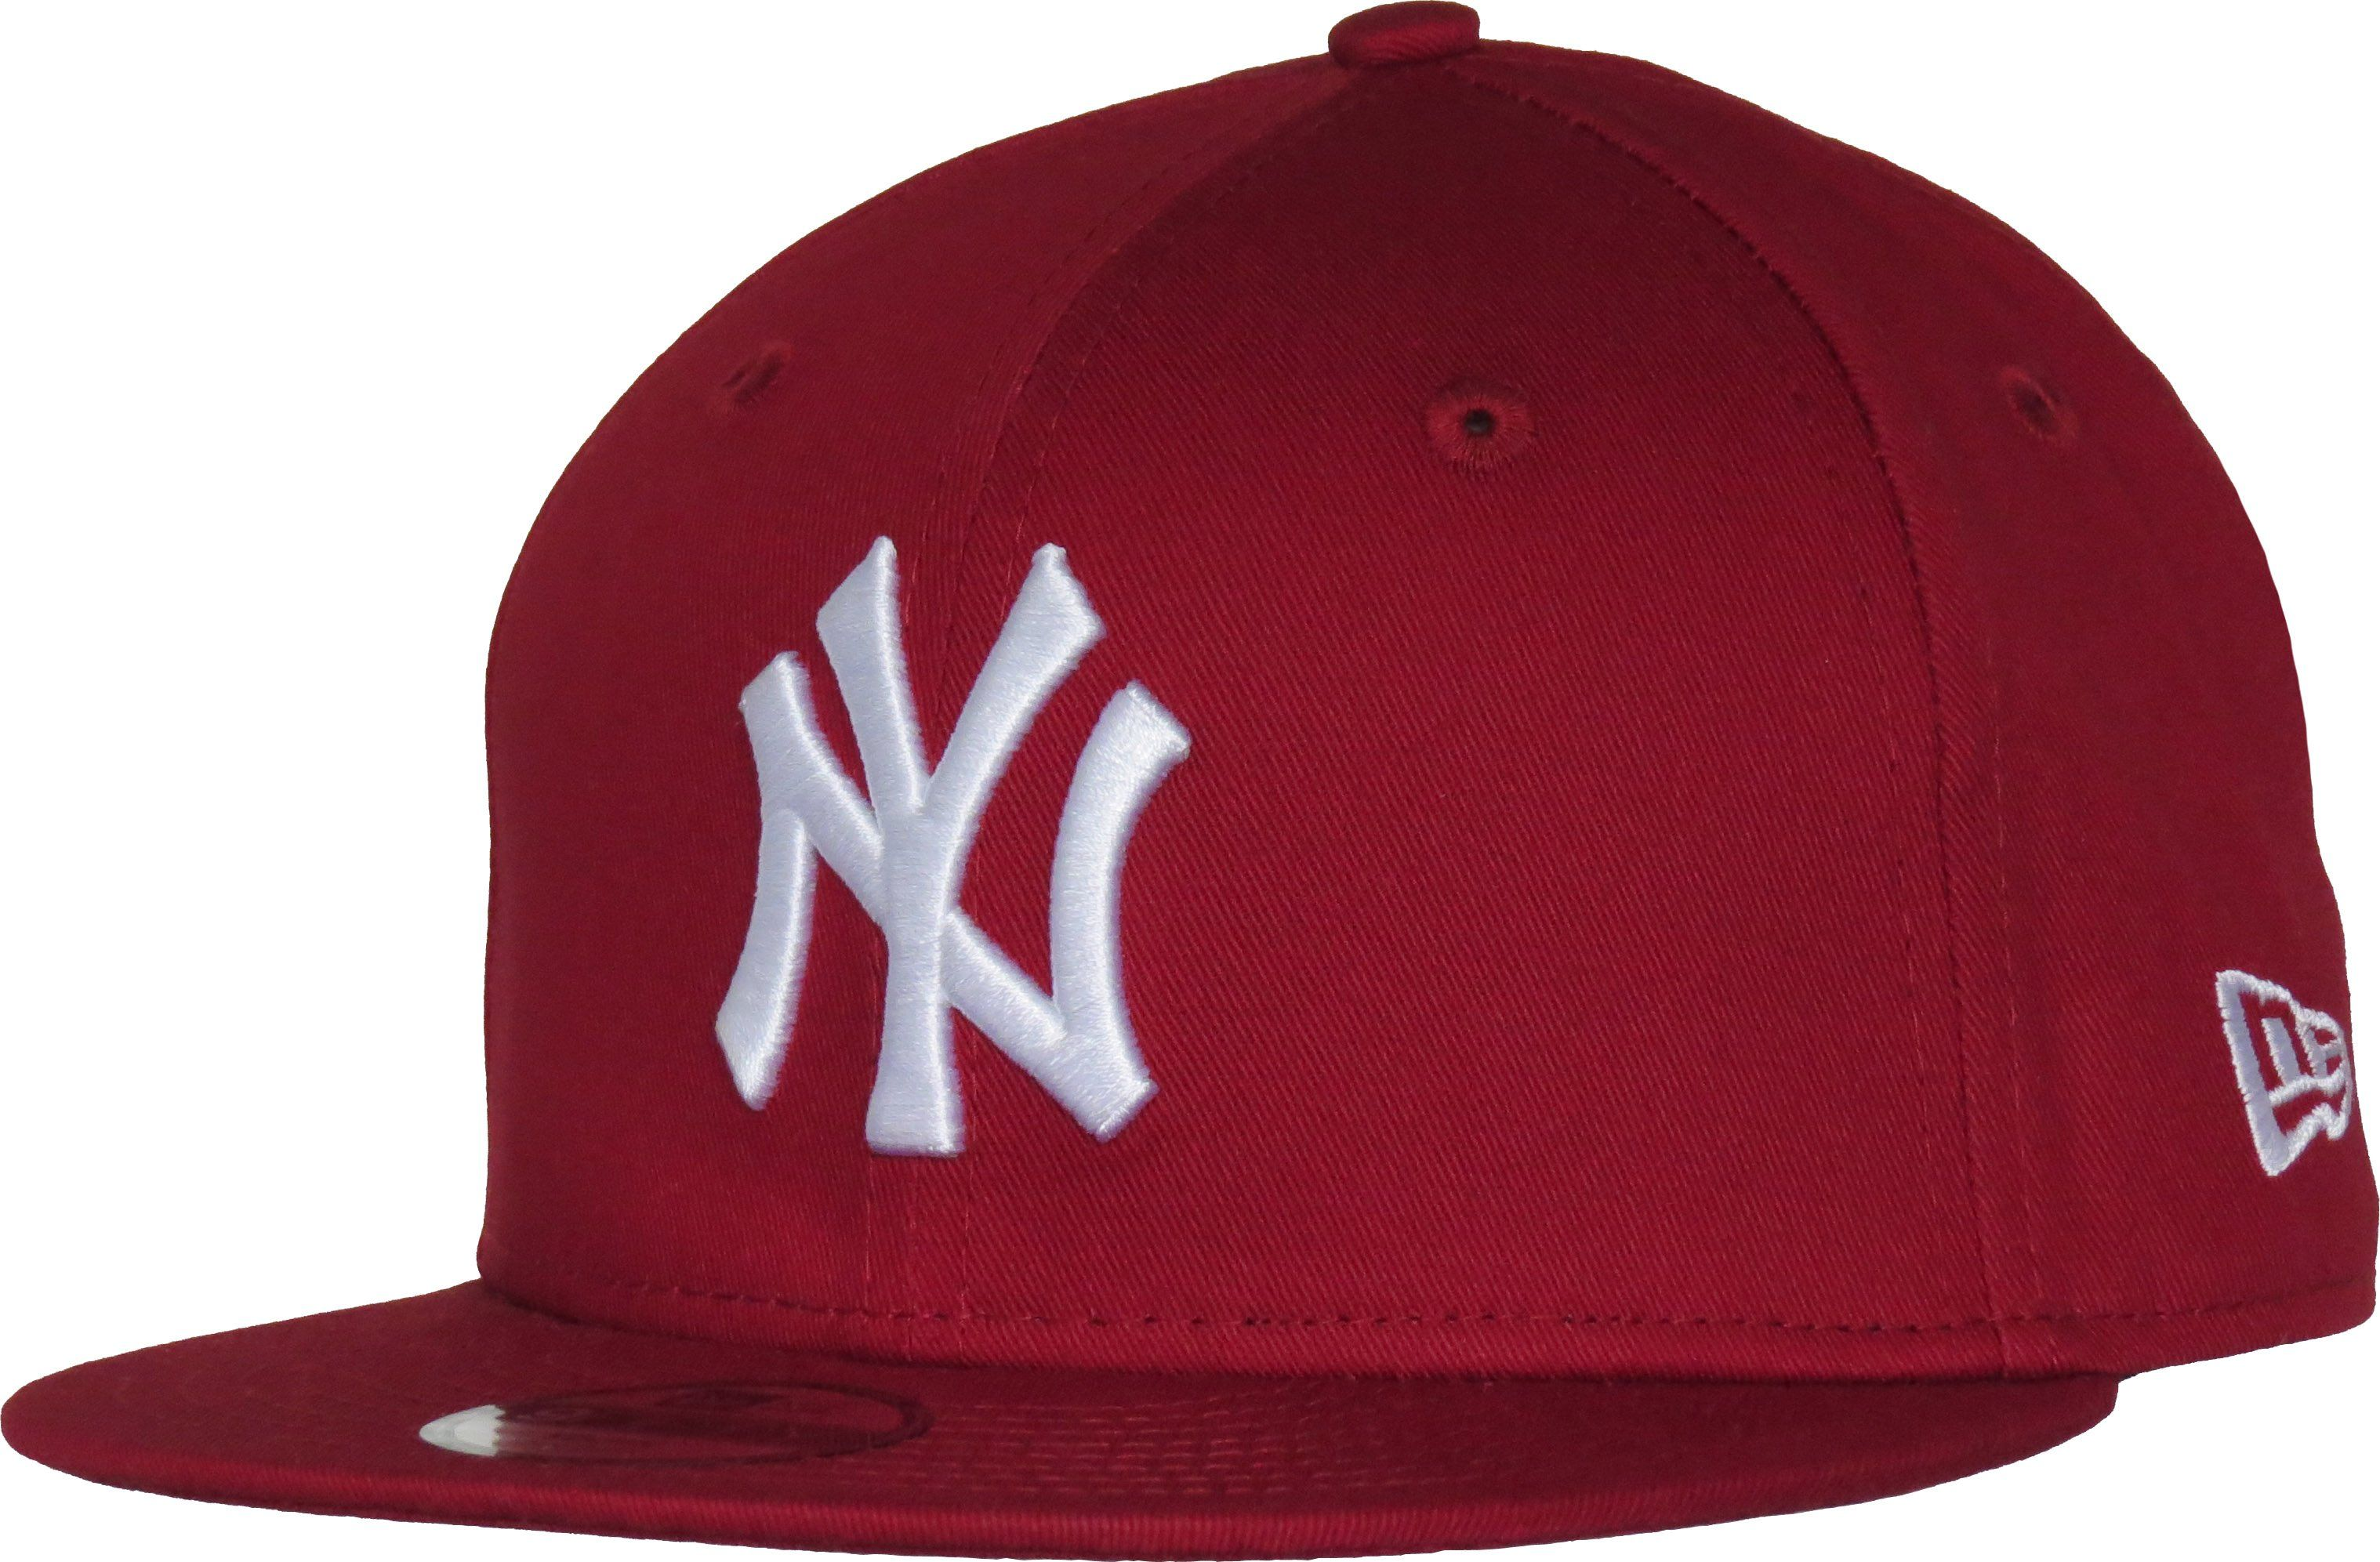 79be0adbe87 NY Yankees New Era 950 Kids Essential Red Snapback Cap (Age 4 - 10 yea –  lovemycap